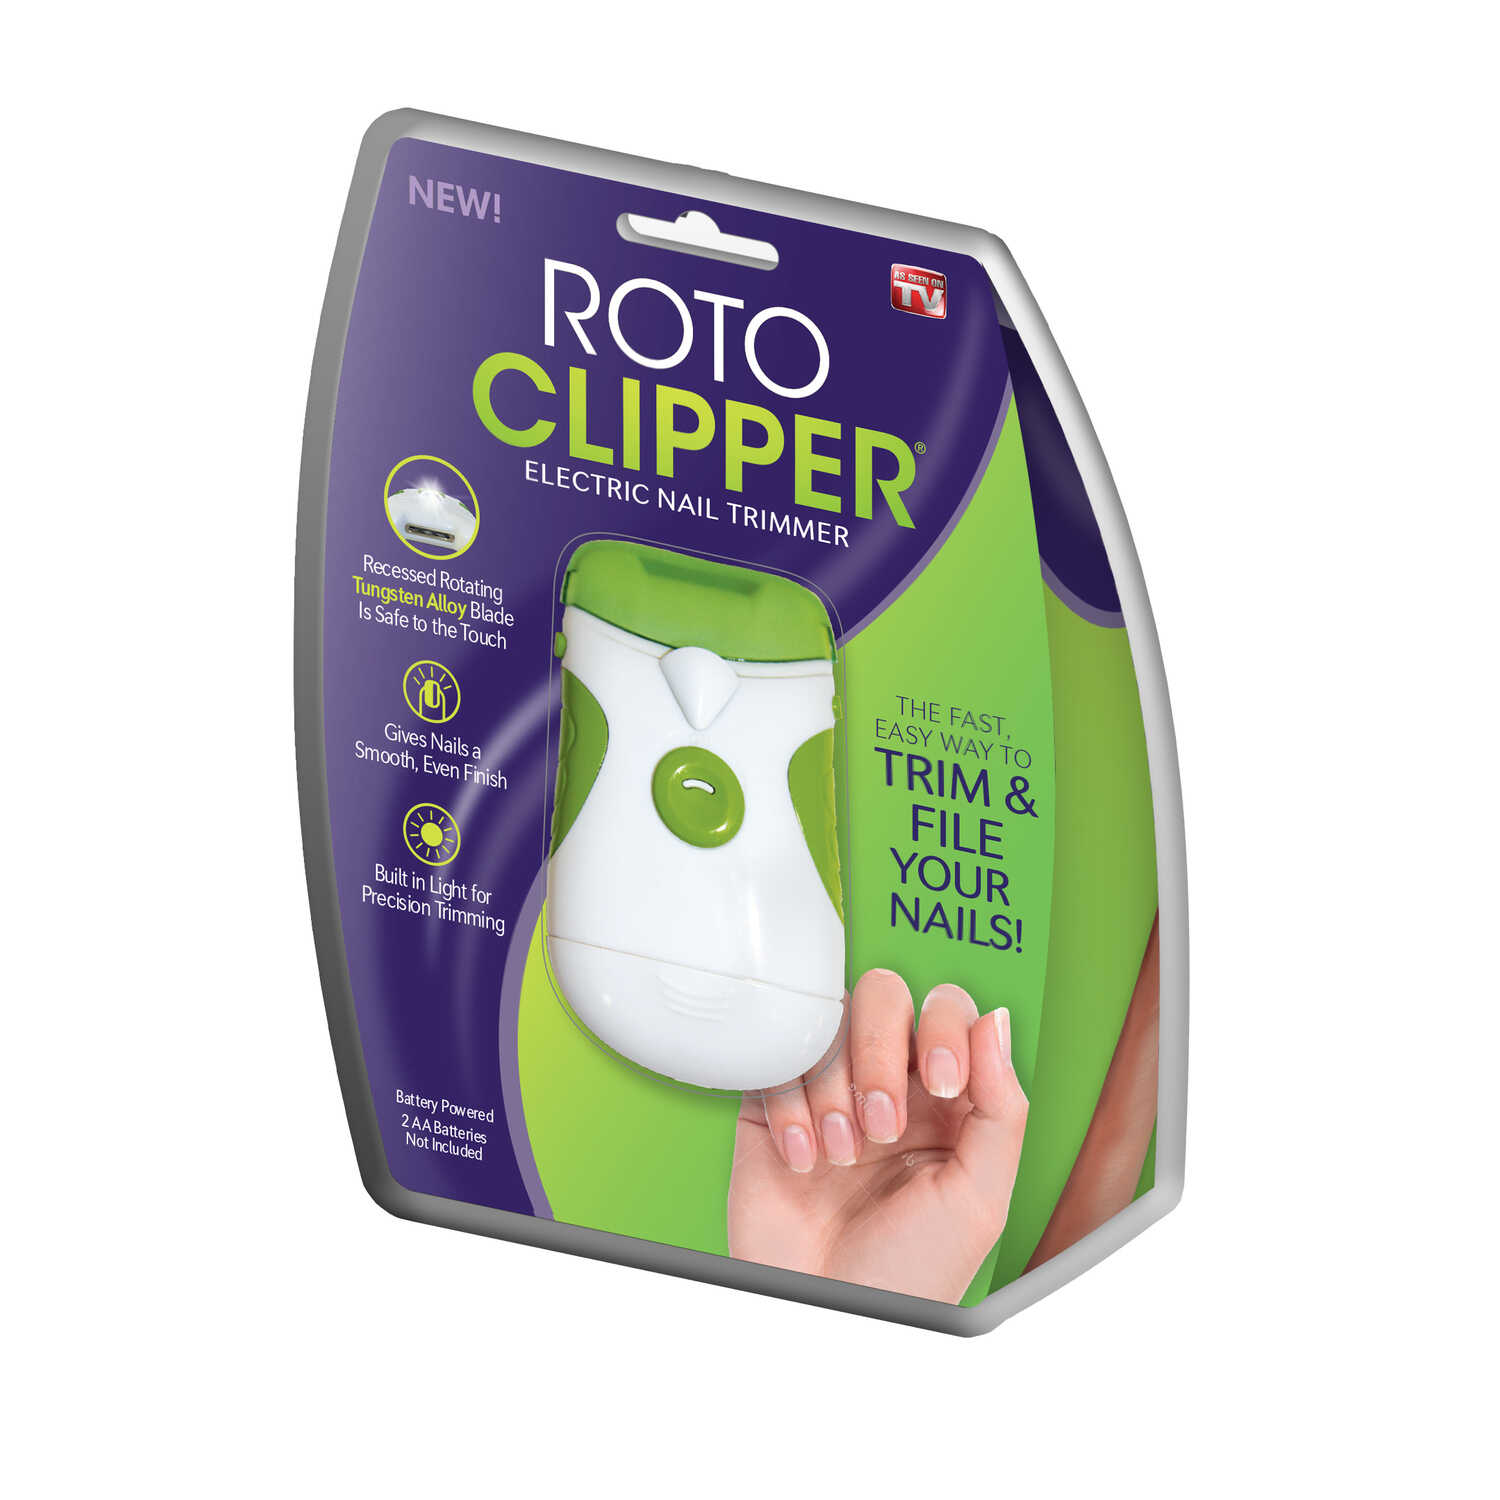 Roto Clipper  As Seen On TV  Green/White  Nail Care System  8.15 inches High  1 pk